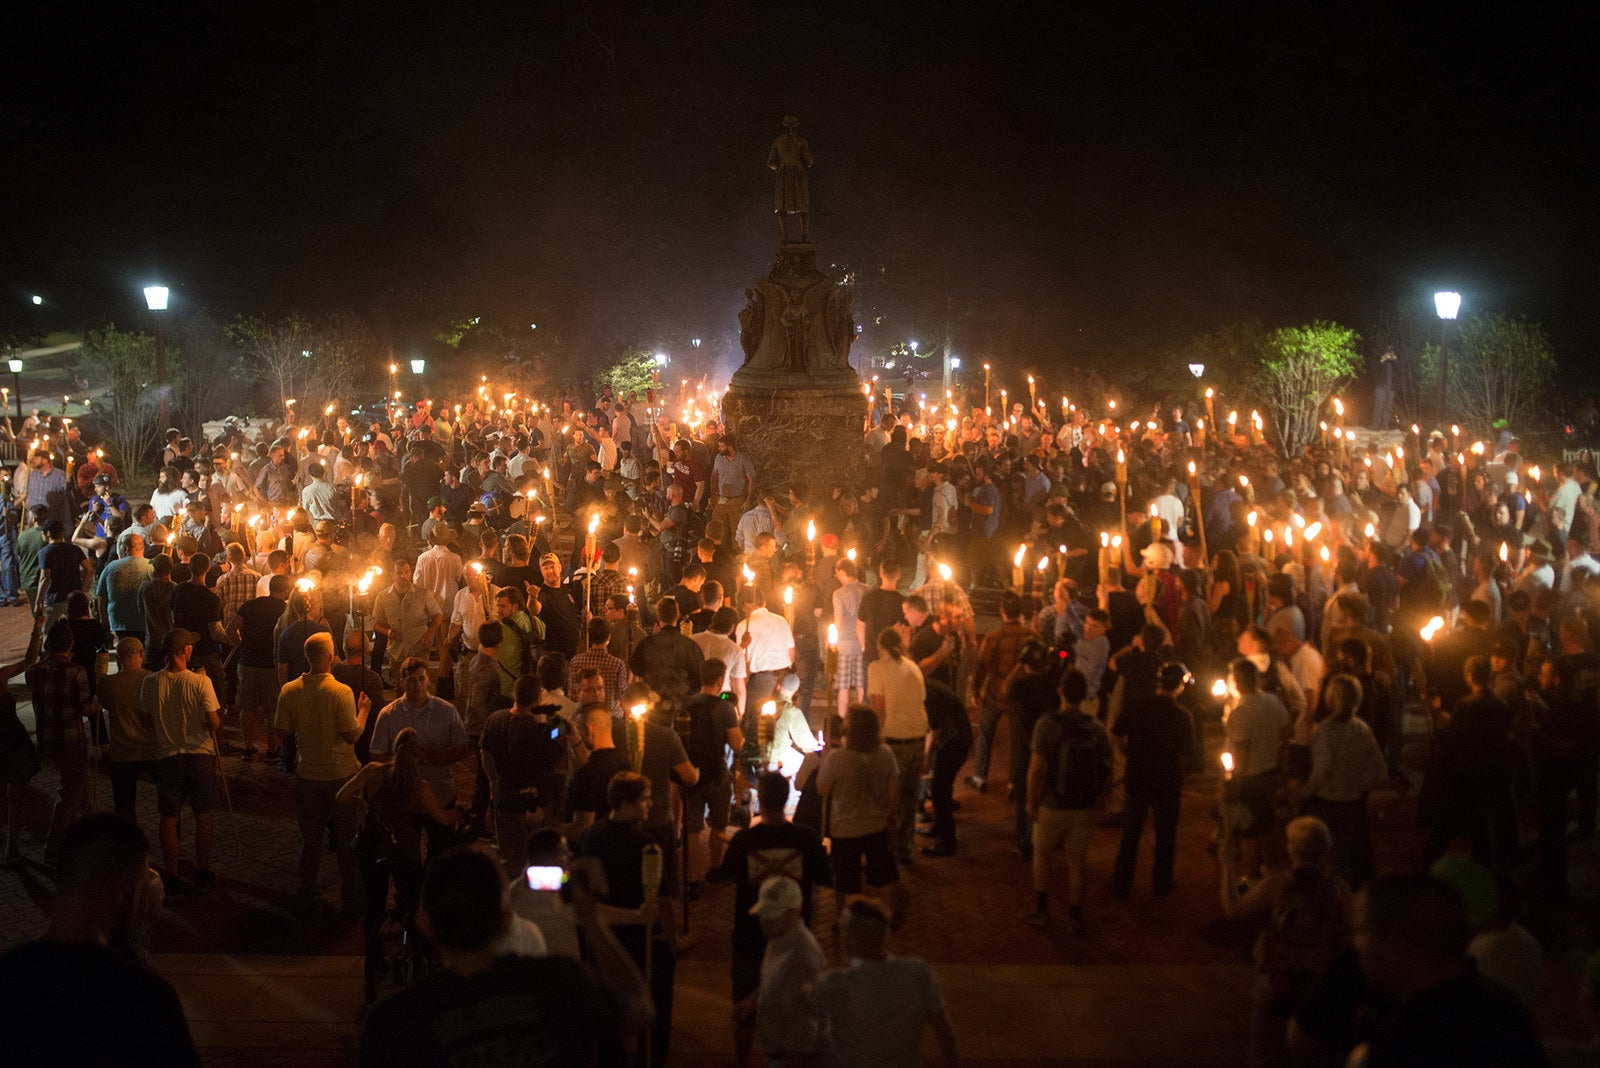 Protesters at a white supremacist rally at the University of Virginia on August 11.